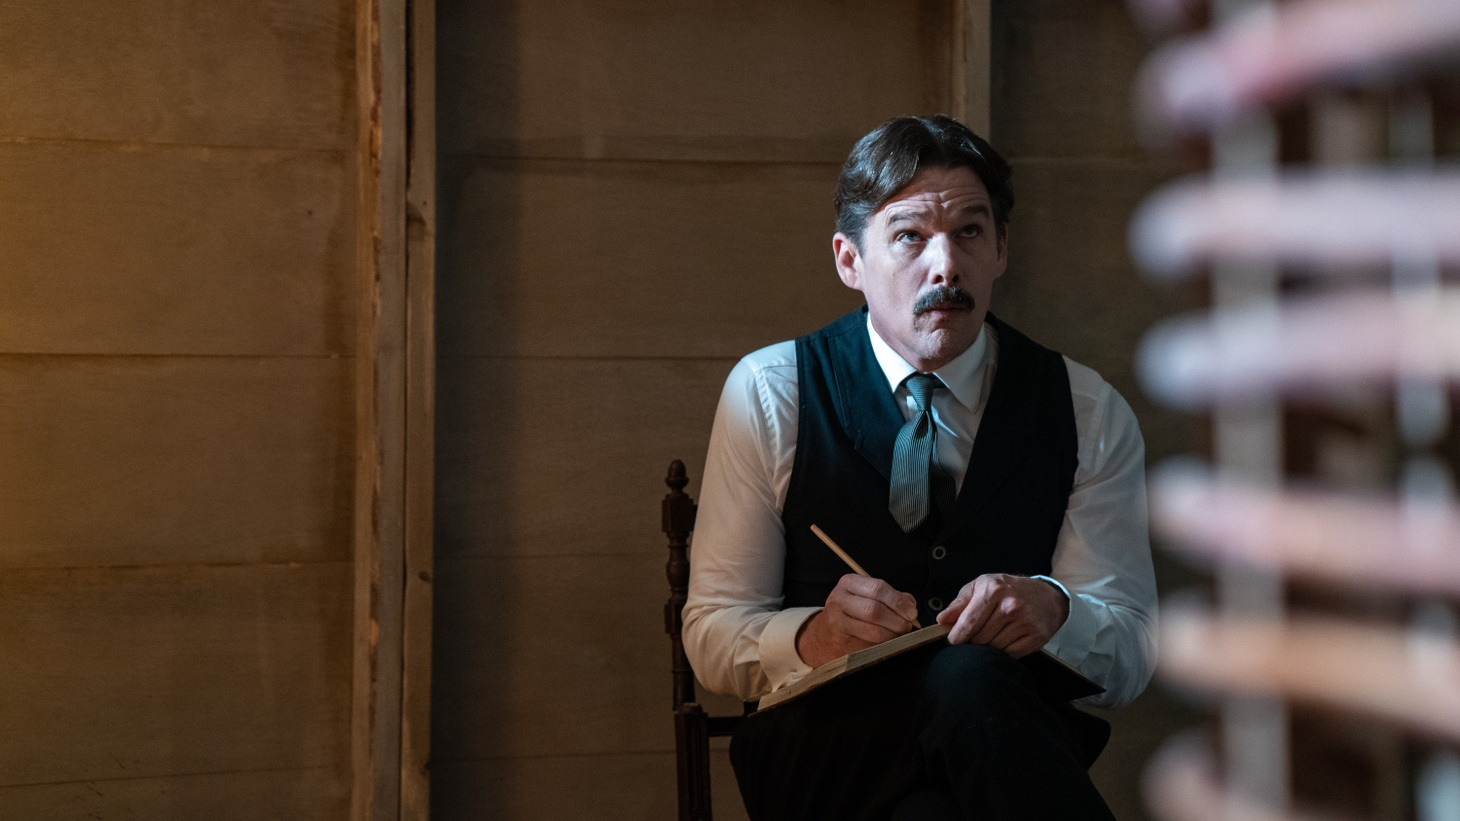 """Ethan Hawke stars as Nikola Tesla in the movie """"Tesla"""" about the enigmatic inventor and physicist."""